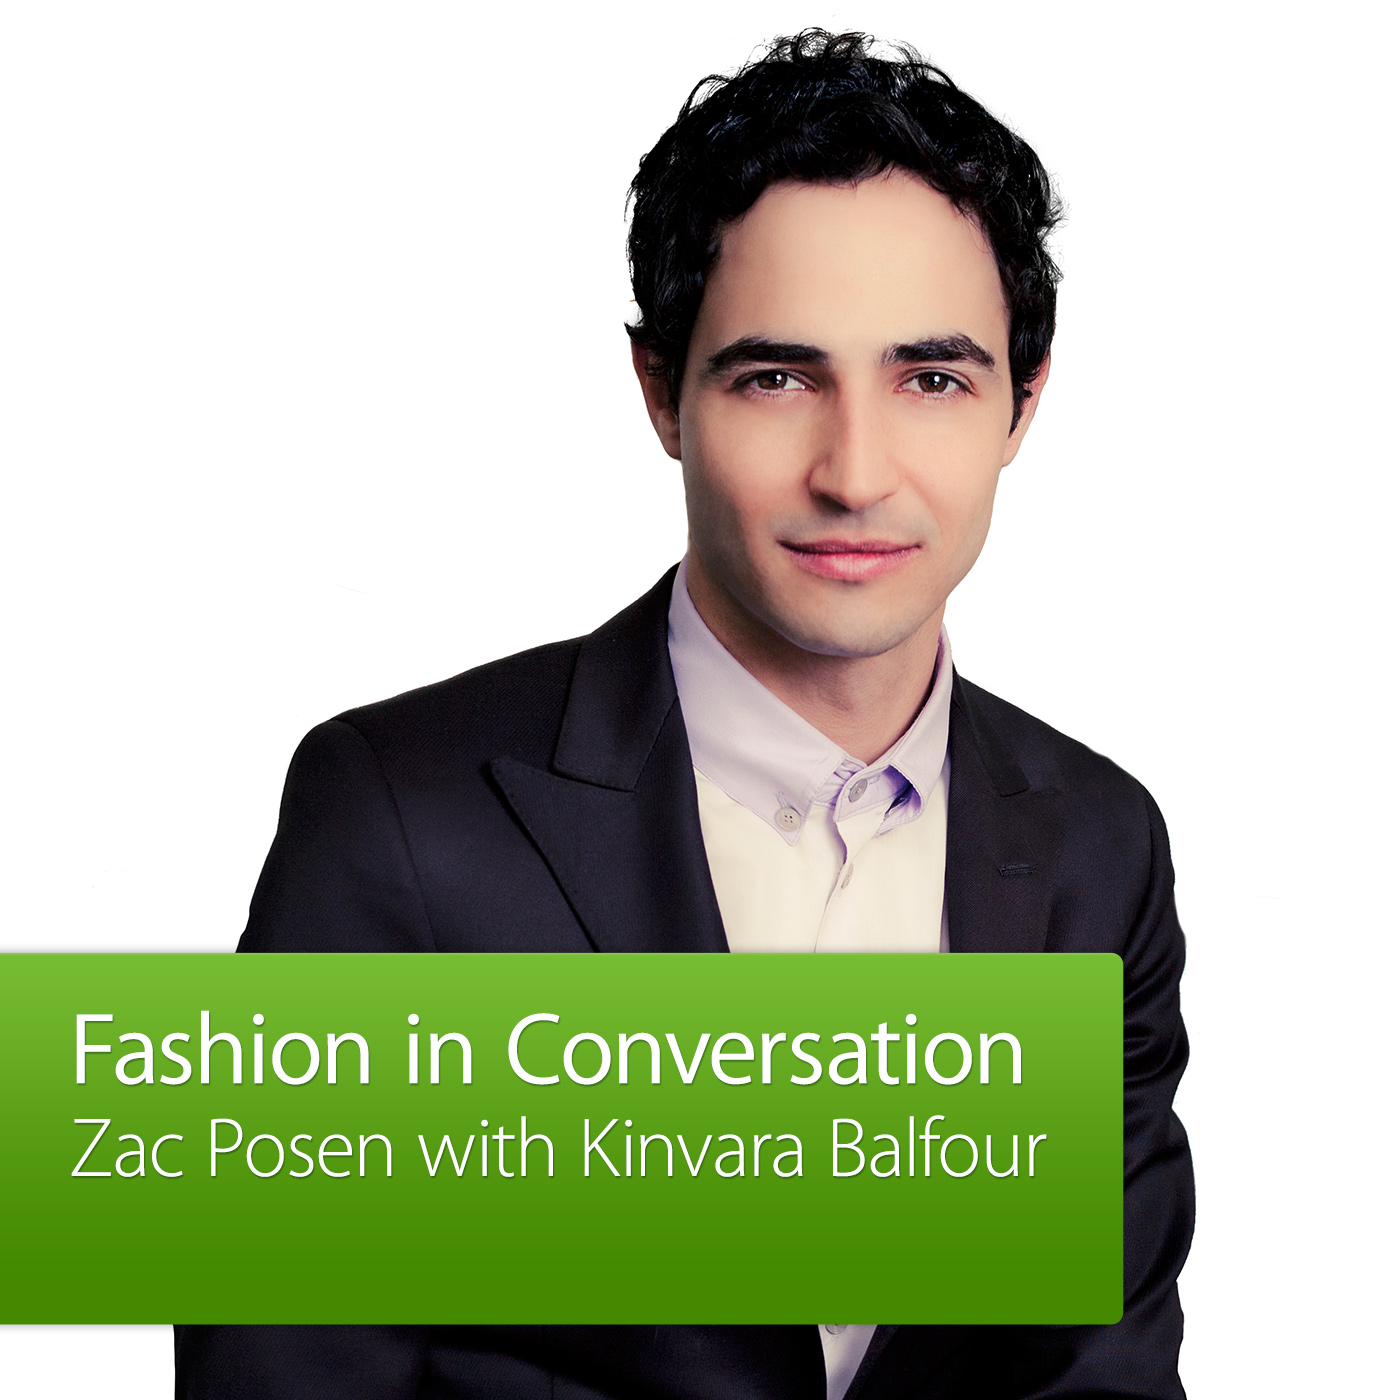 Zac Posen with Kinvara Balfour: Fashion in Conversation